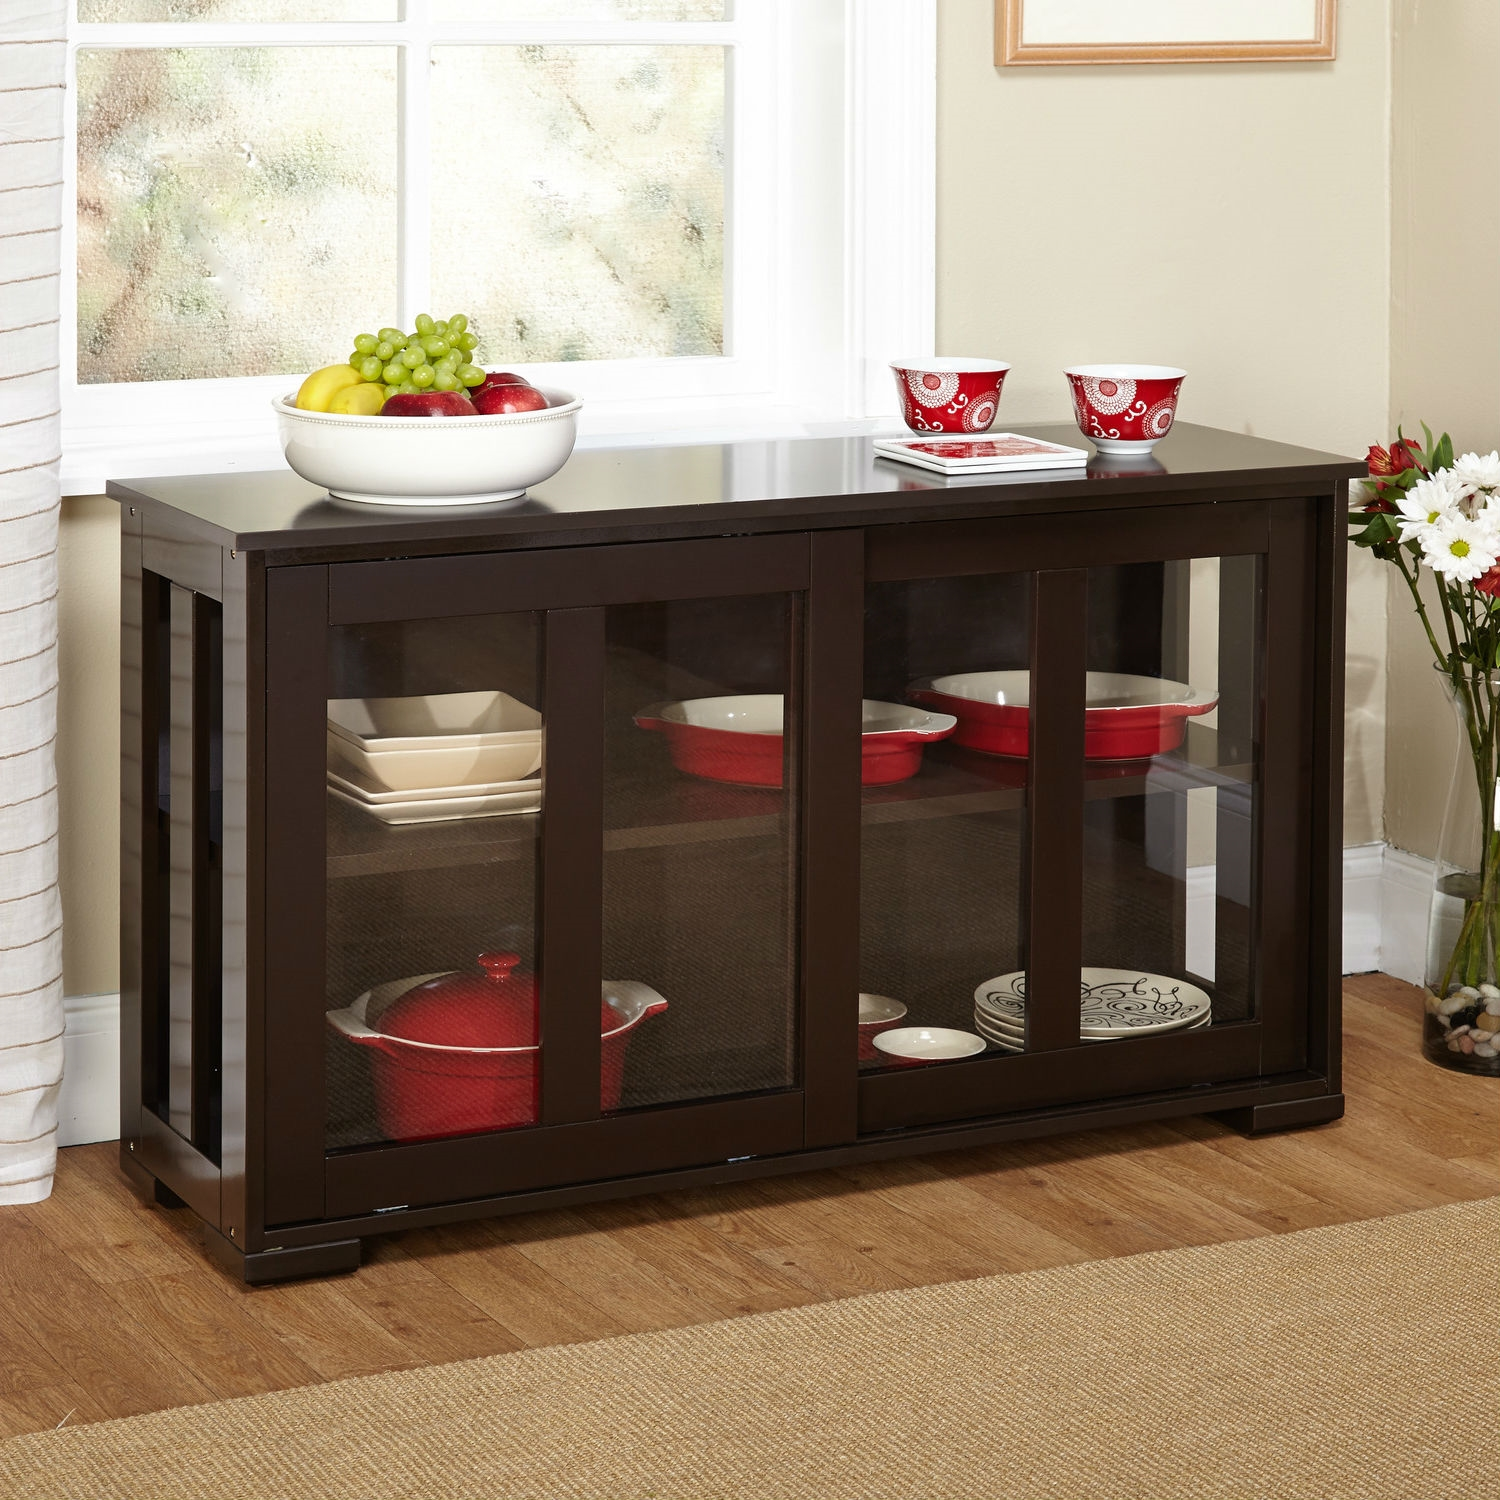 Espresso Sideboard Buffet Dining Kitchen Cabinet with 2 Glass ...